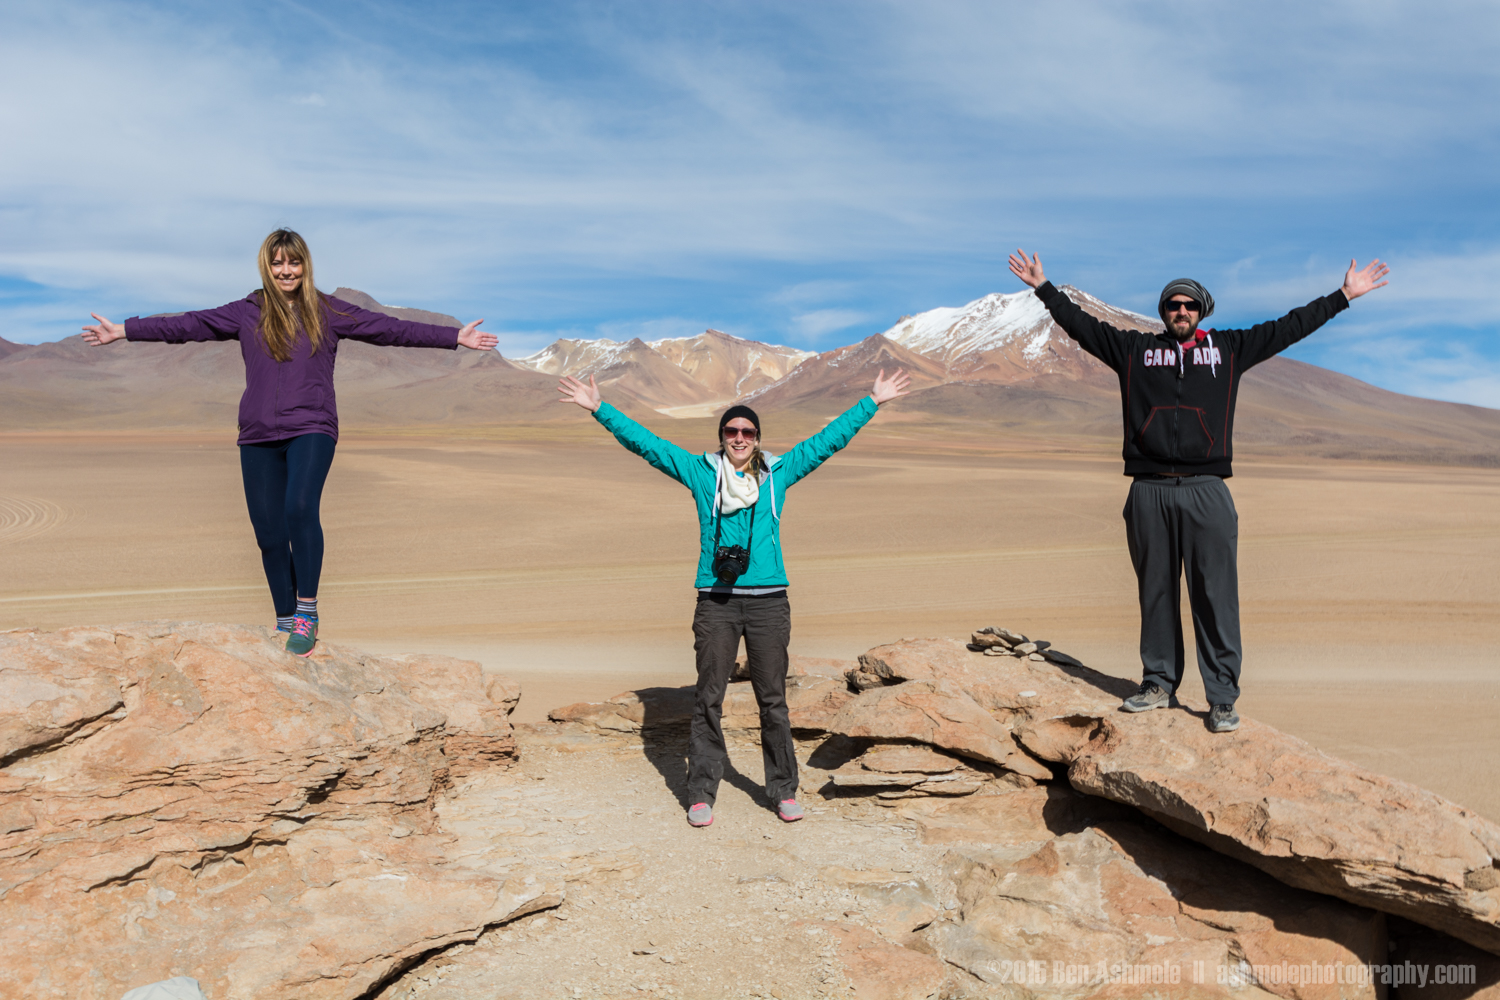 Tour Group In The Desert 3, Bolivian Highlands